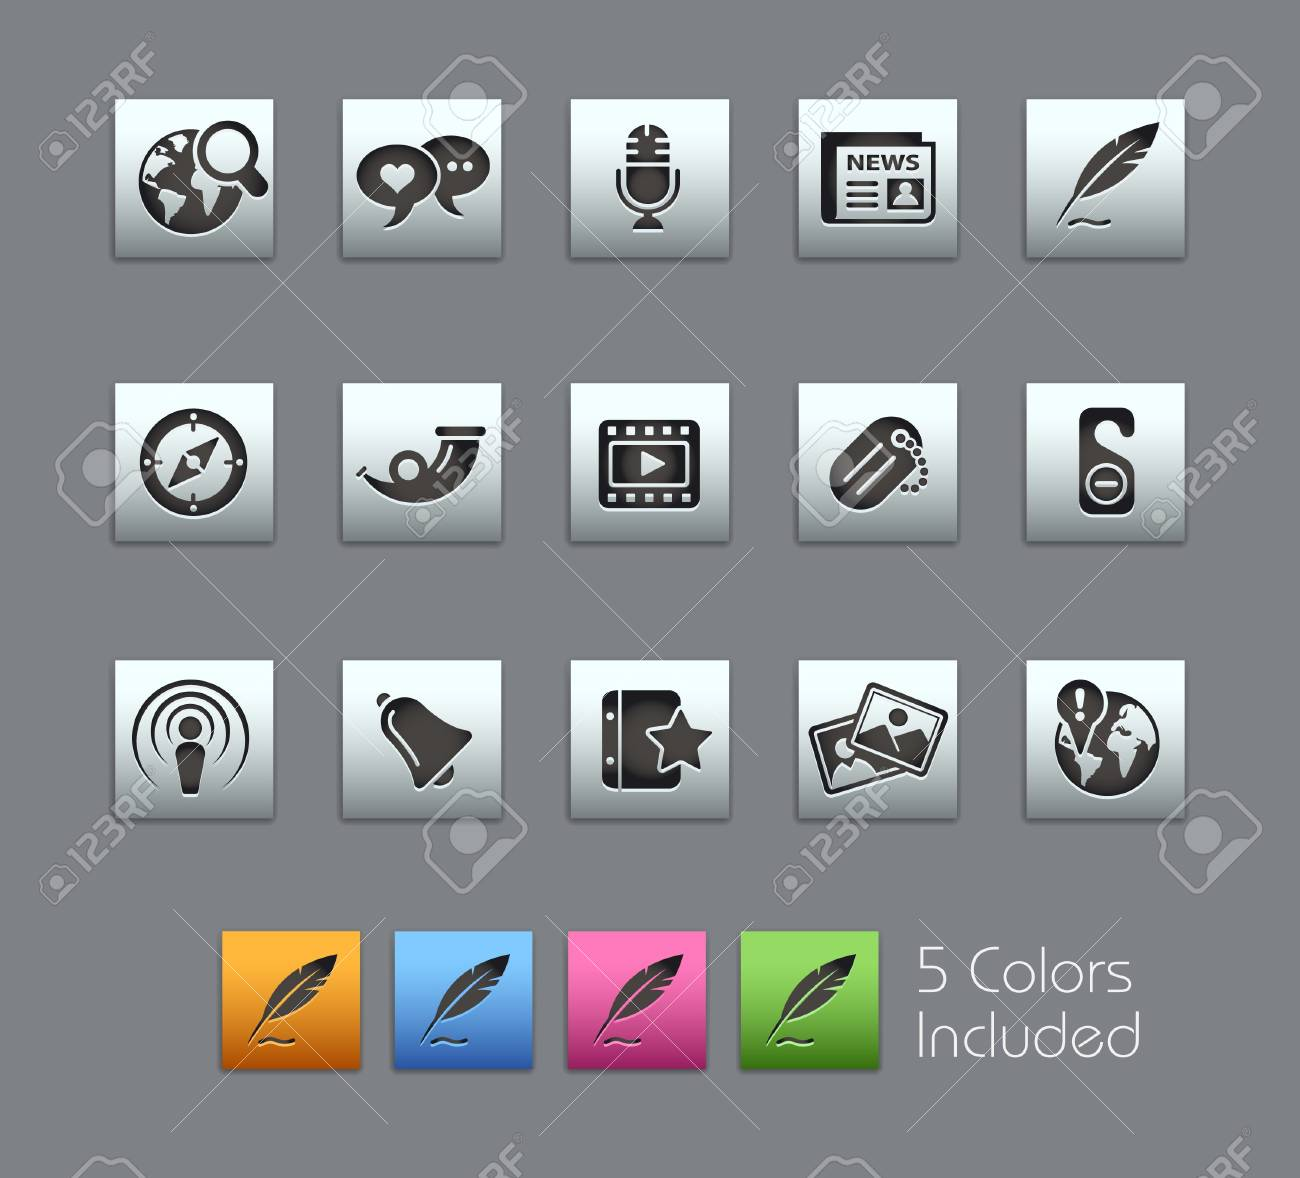 Social Media / It includes 5 colors in different layers Stock Vector - 7309291